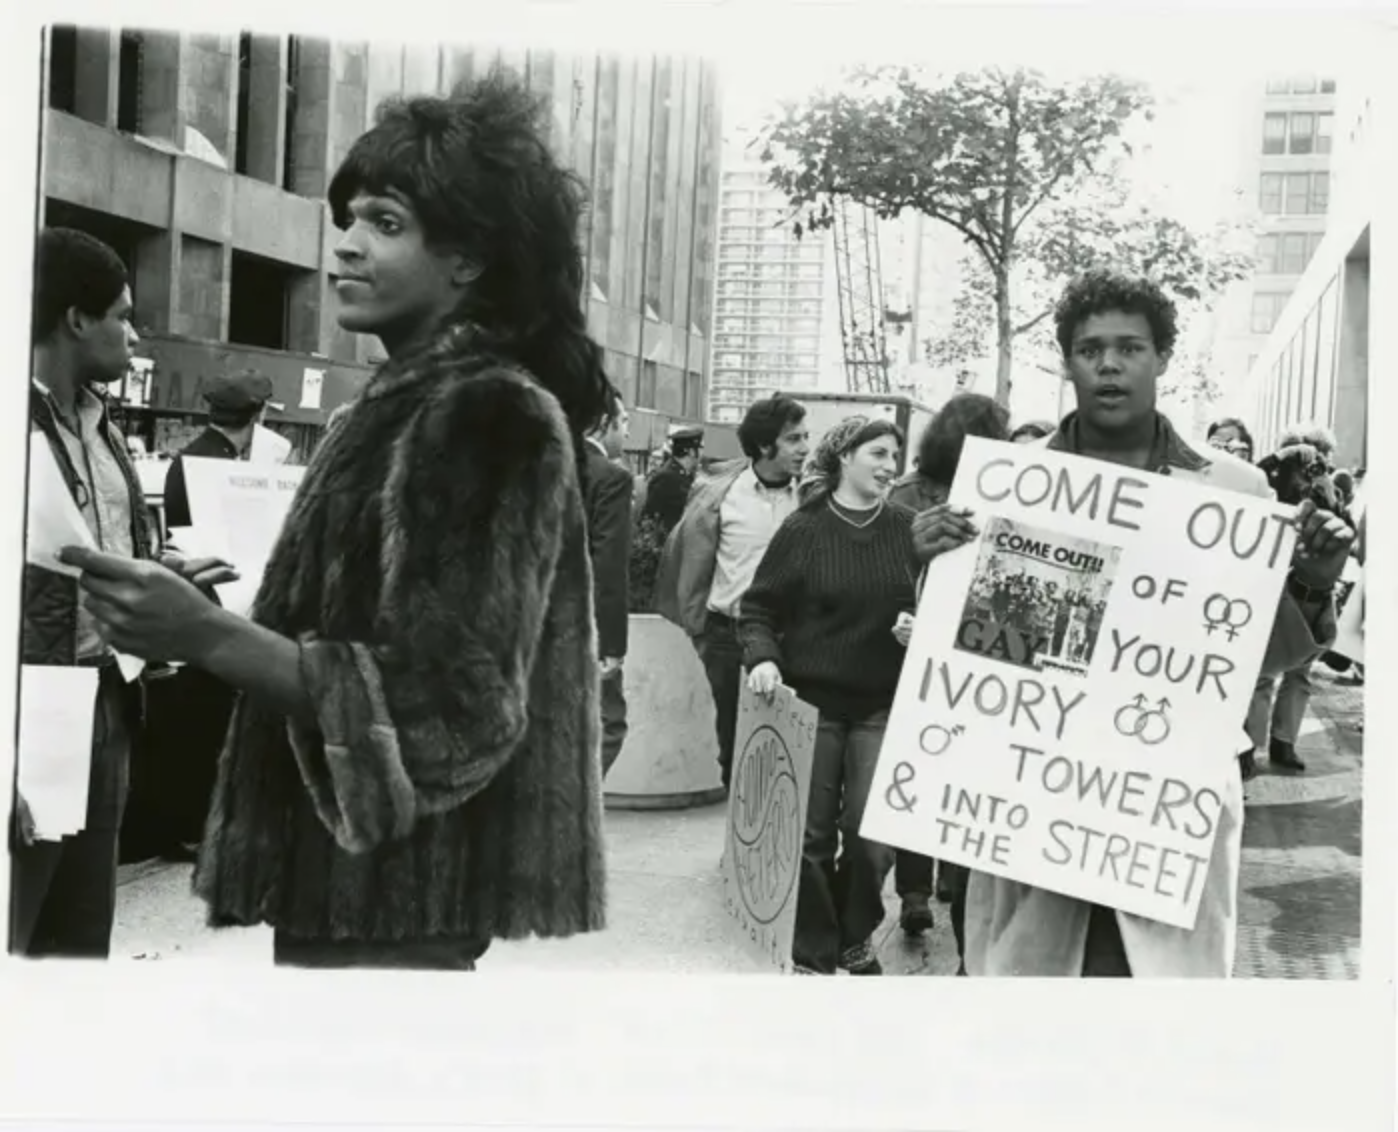 """A 1970 photo of Marsha P. Johnson handing out flyers in support of Gay Students at NYU is seen here courtesy of the New York Public Library's """"1969: The Year of Gay Liberation"""" exhibit"""